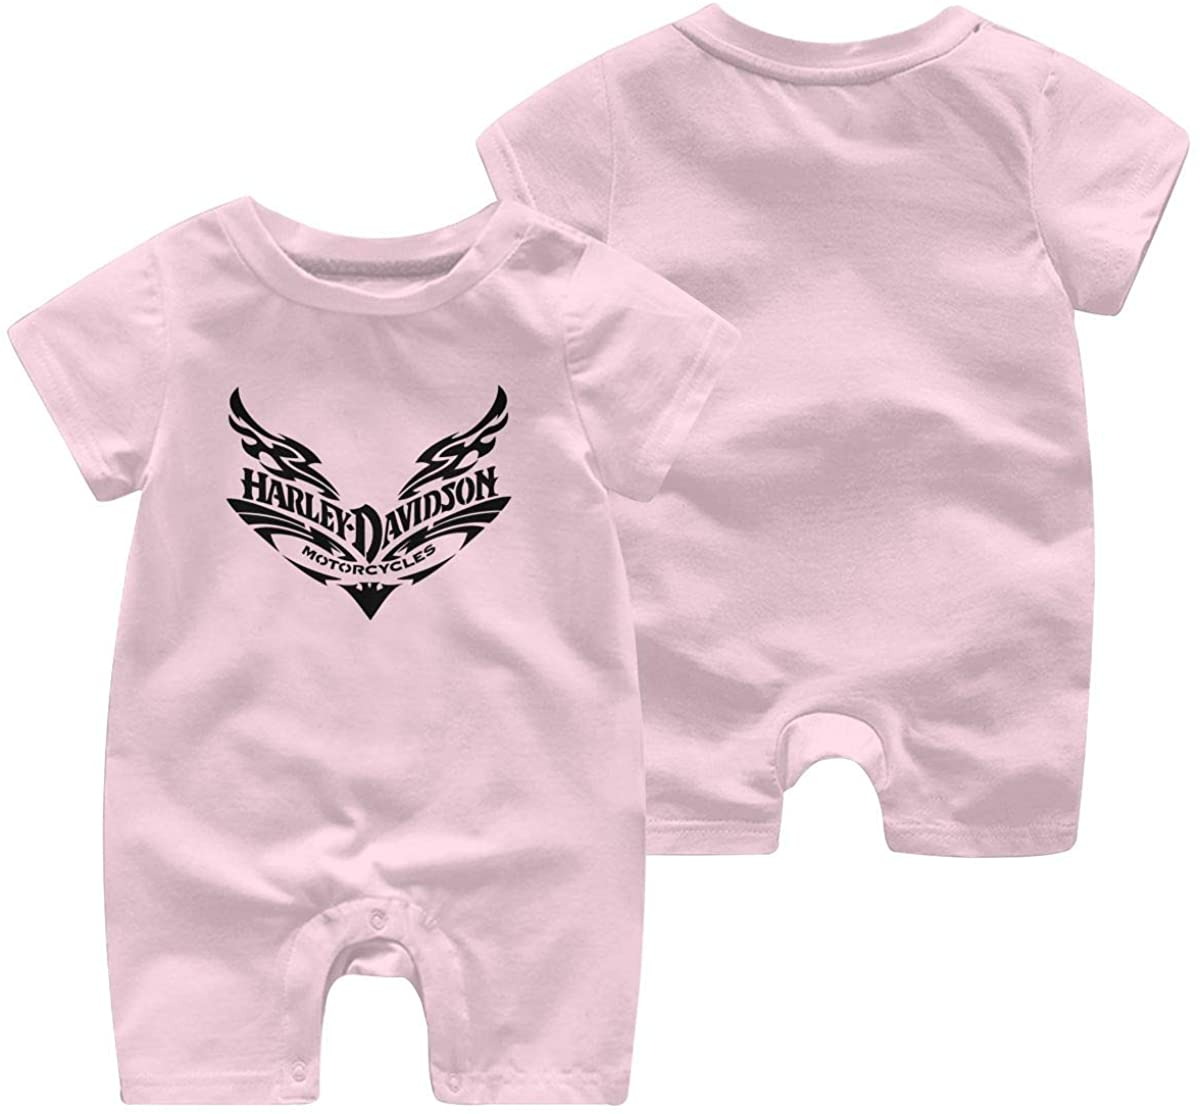 Harley Davidson One Piece Outfits Baby Solid Color Rompers with Button Kids Short Sleeve Playsuit Jumpsuits Cotton Clothing 2t Pink